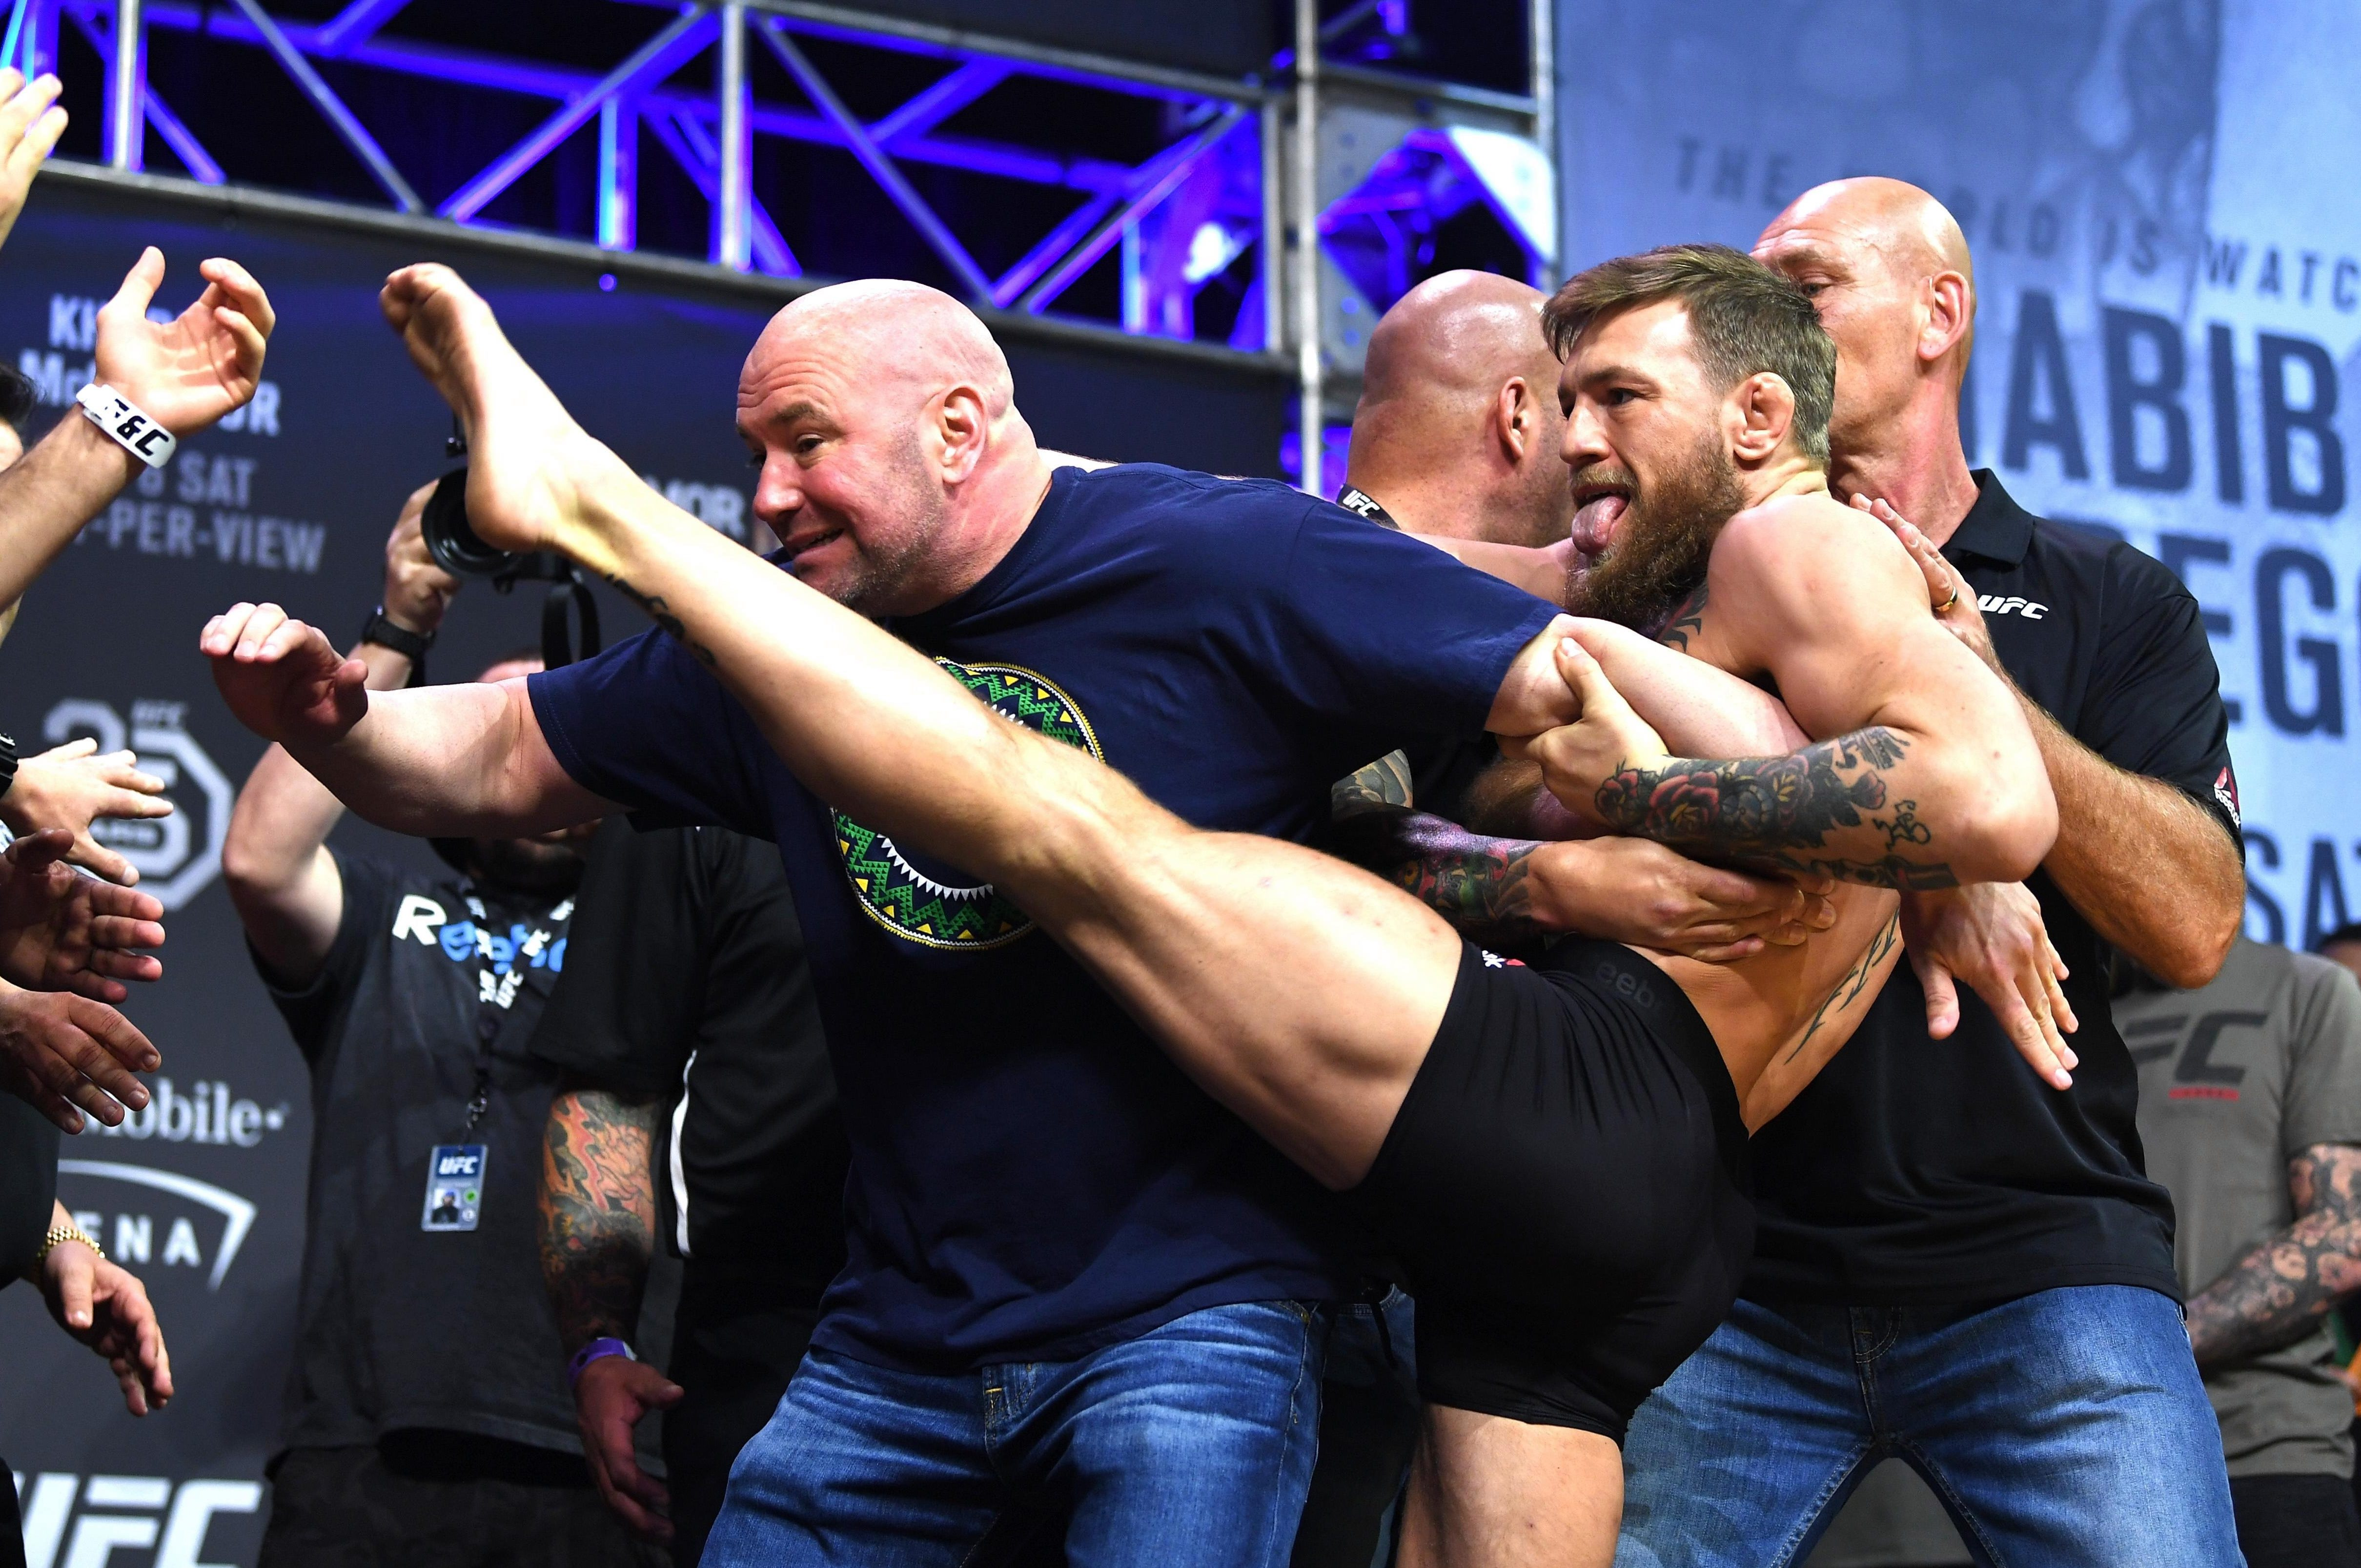 Conor McGregor of Ireland kicks towards Khabib Nurmagomedov of Russia as they face off during the UFC 229 weigh-in